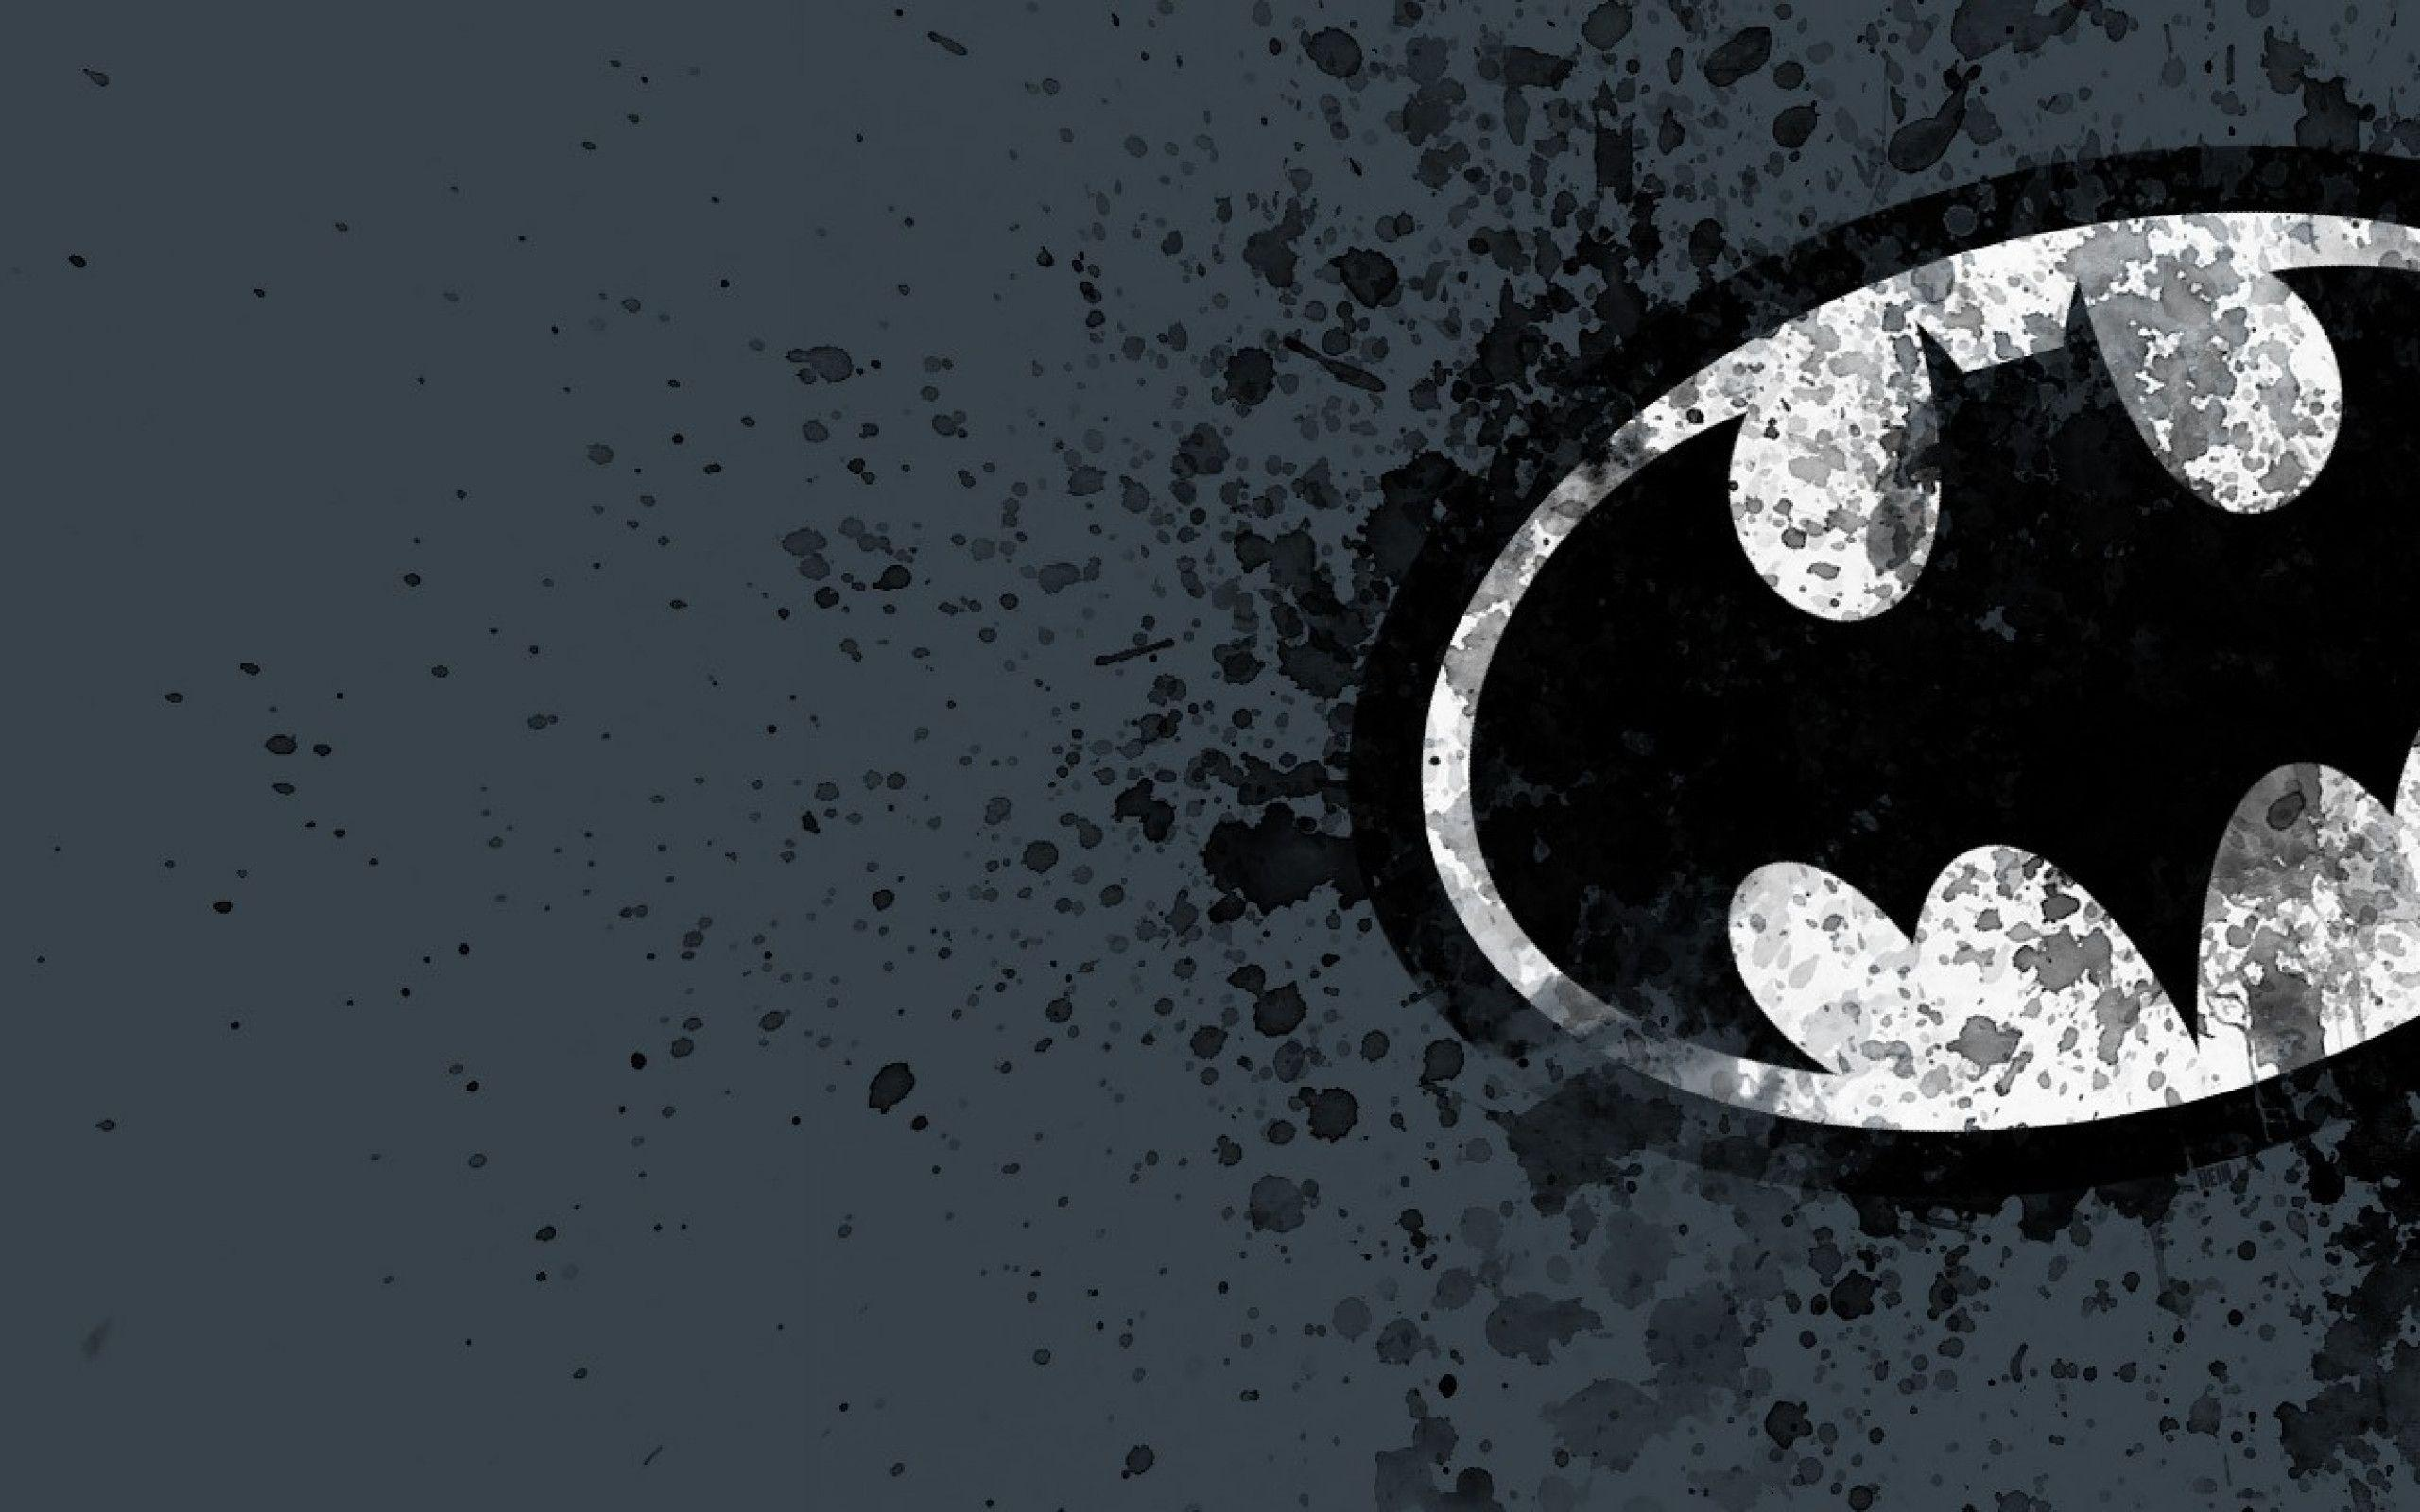 Batman Hd Wallpapers Qygjxz